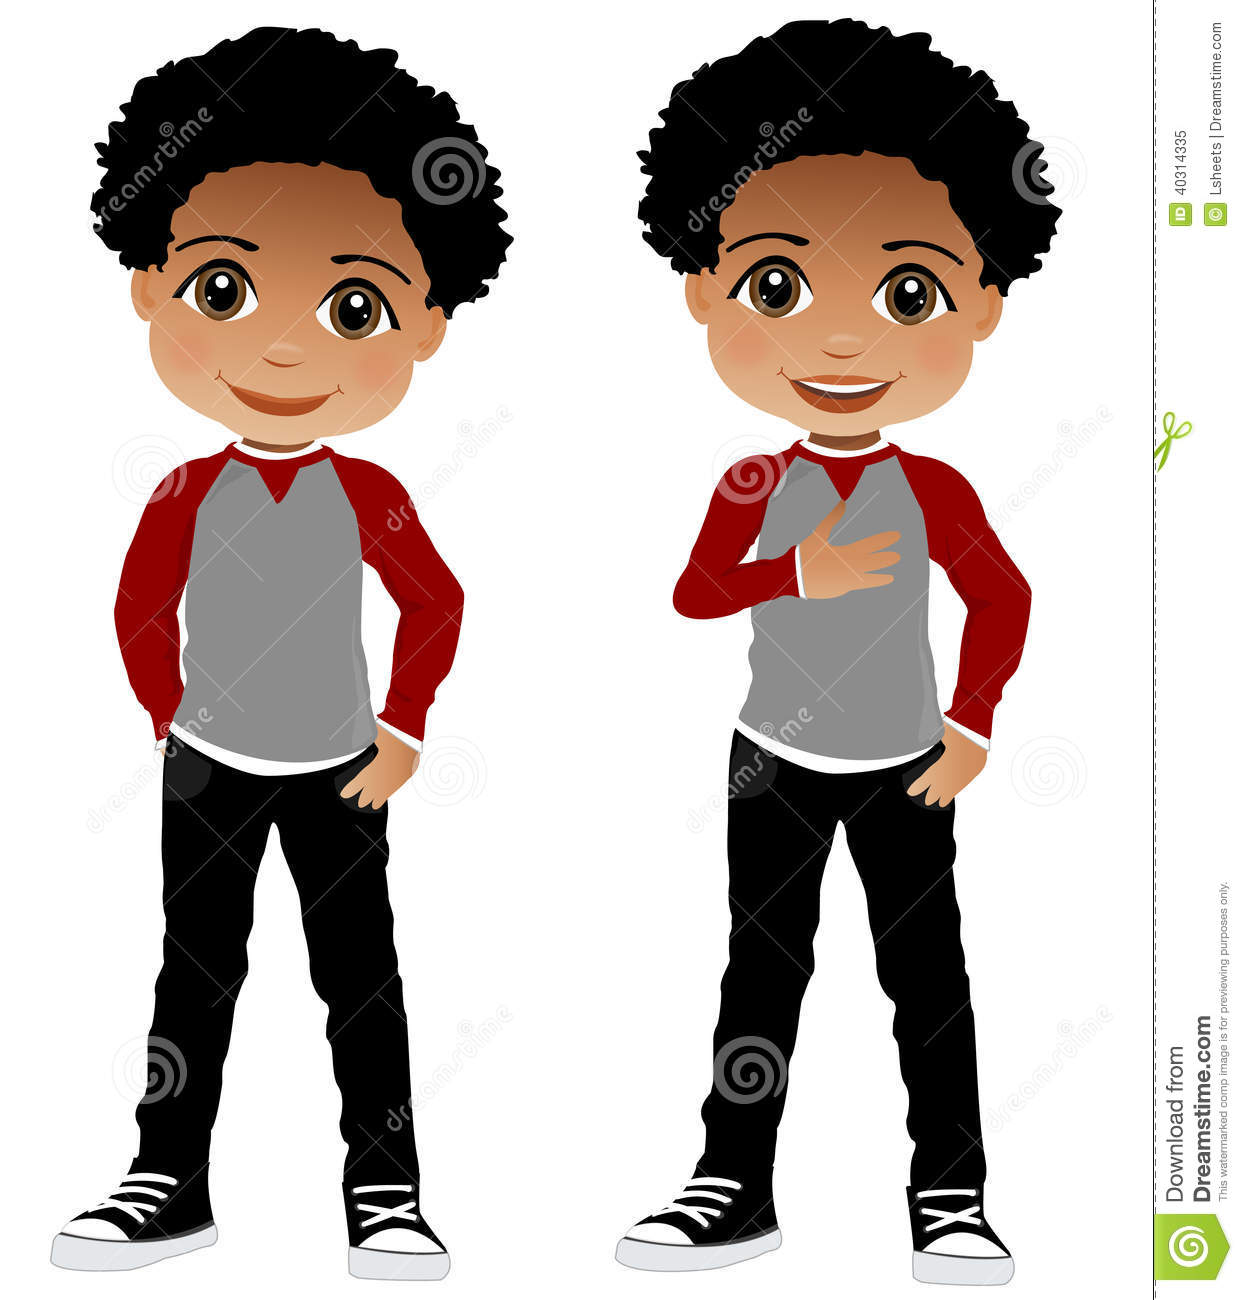 African American Clipart Of Children | Clipart Panda - Free ...